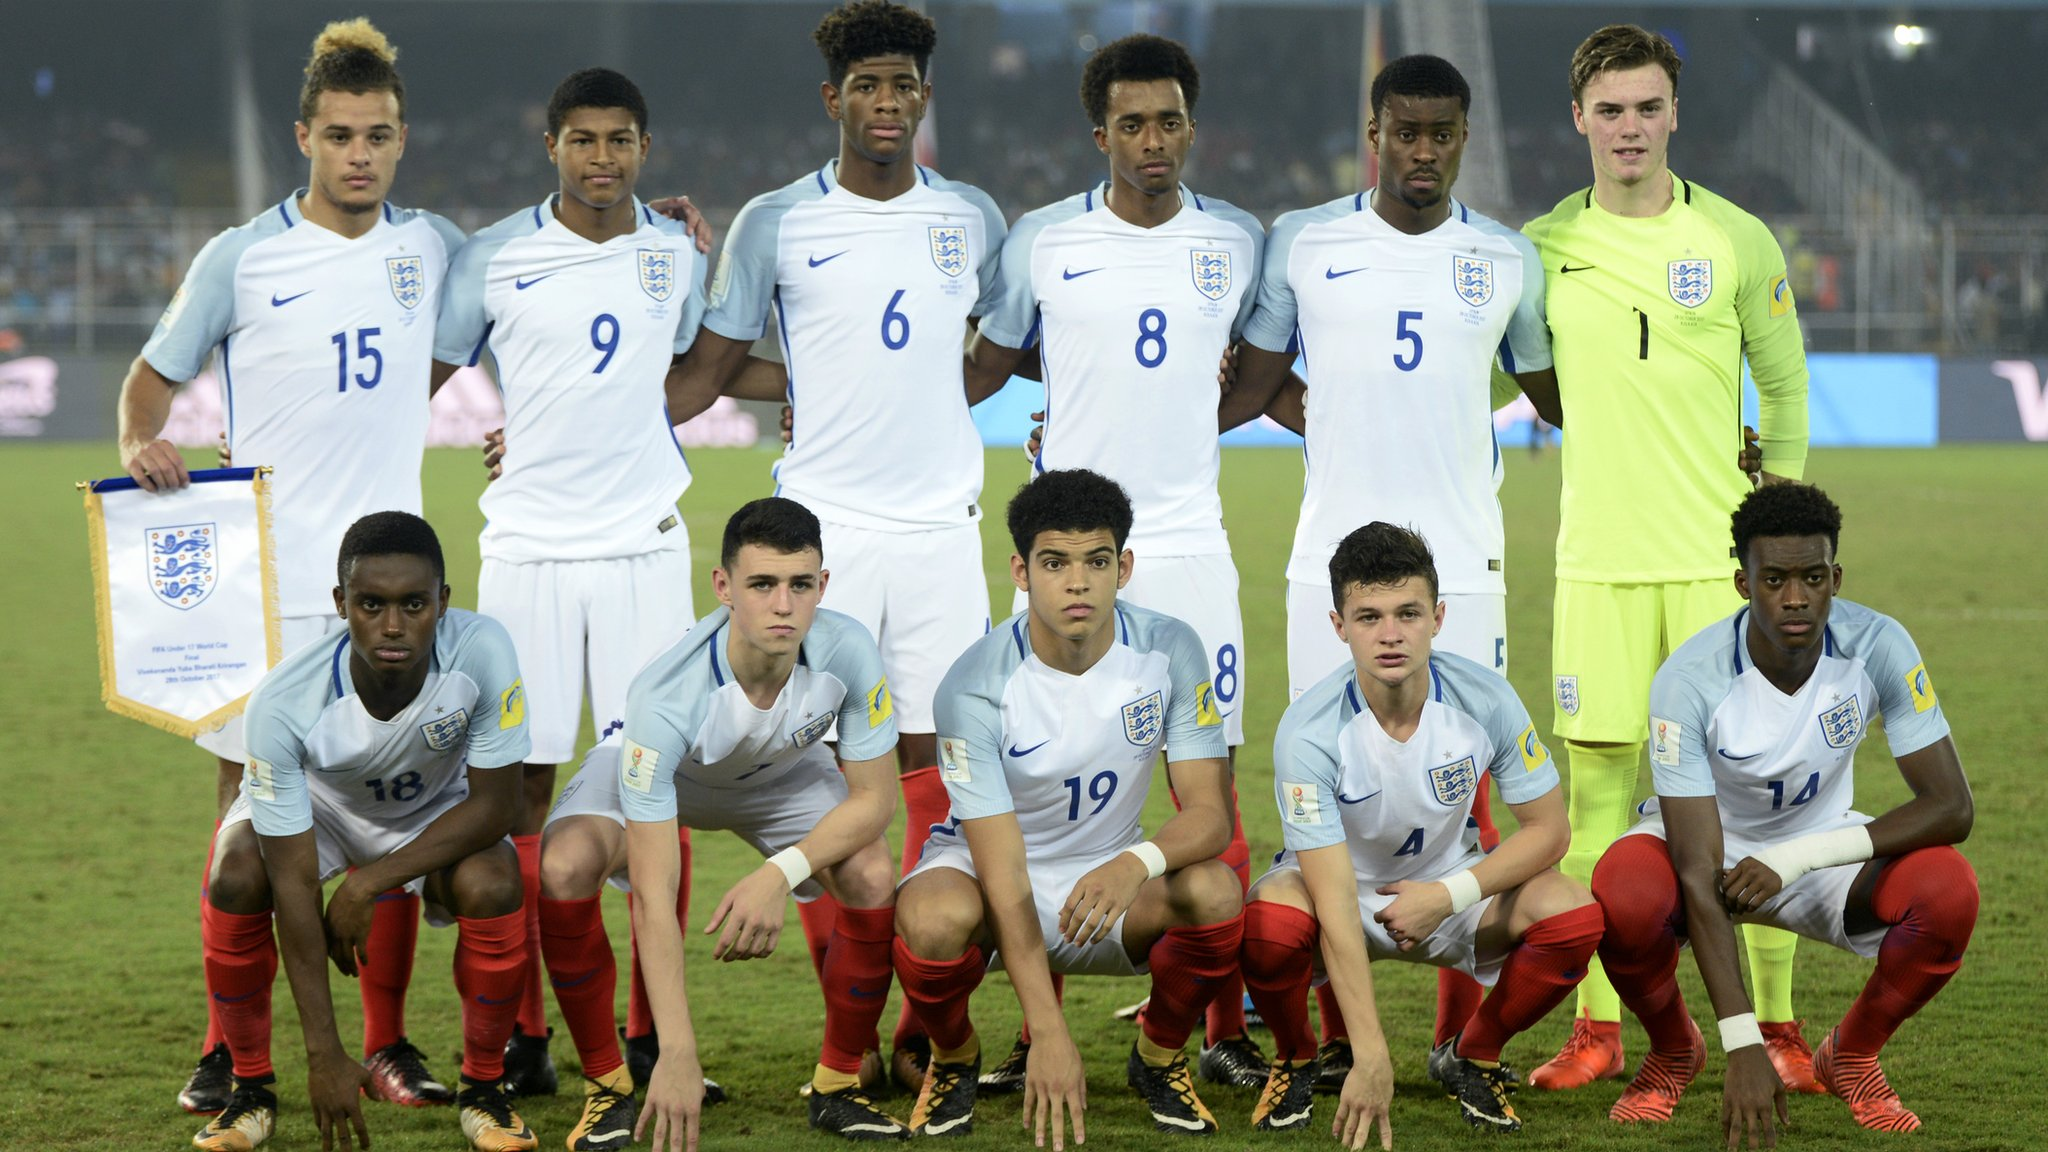 England's U17 World Cup winners - where are they now?